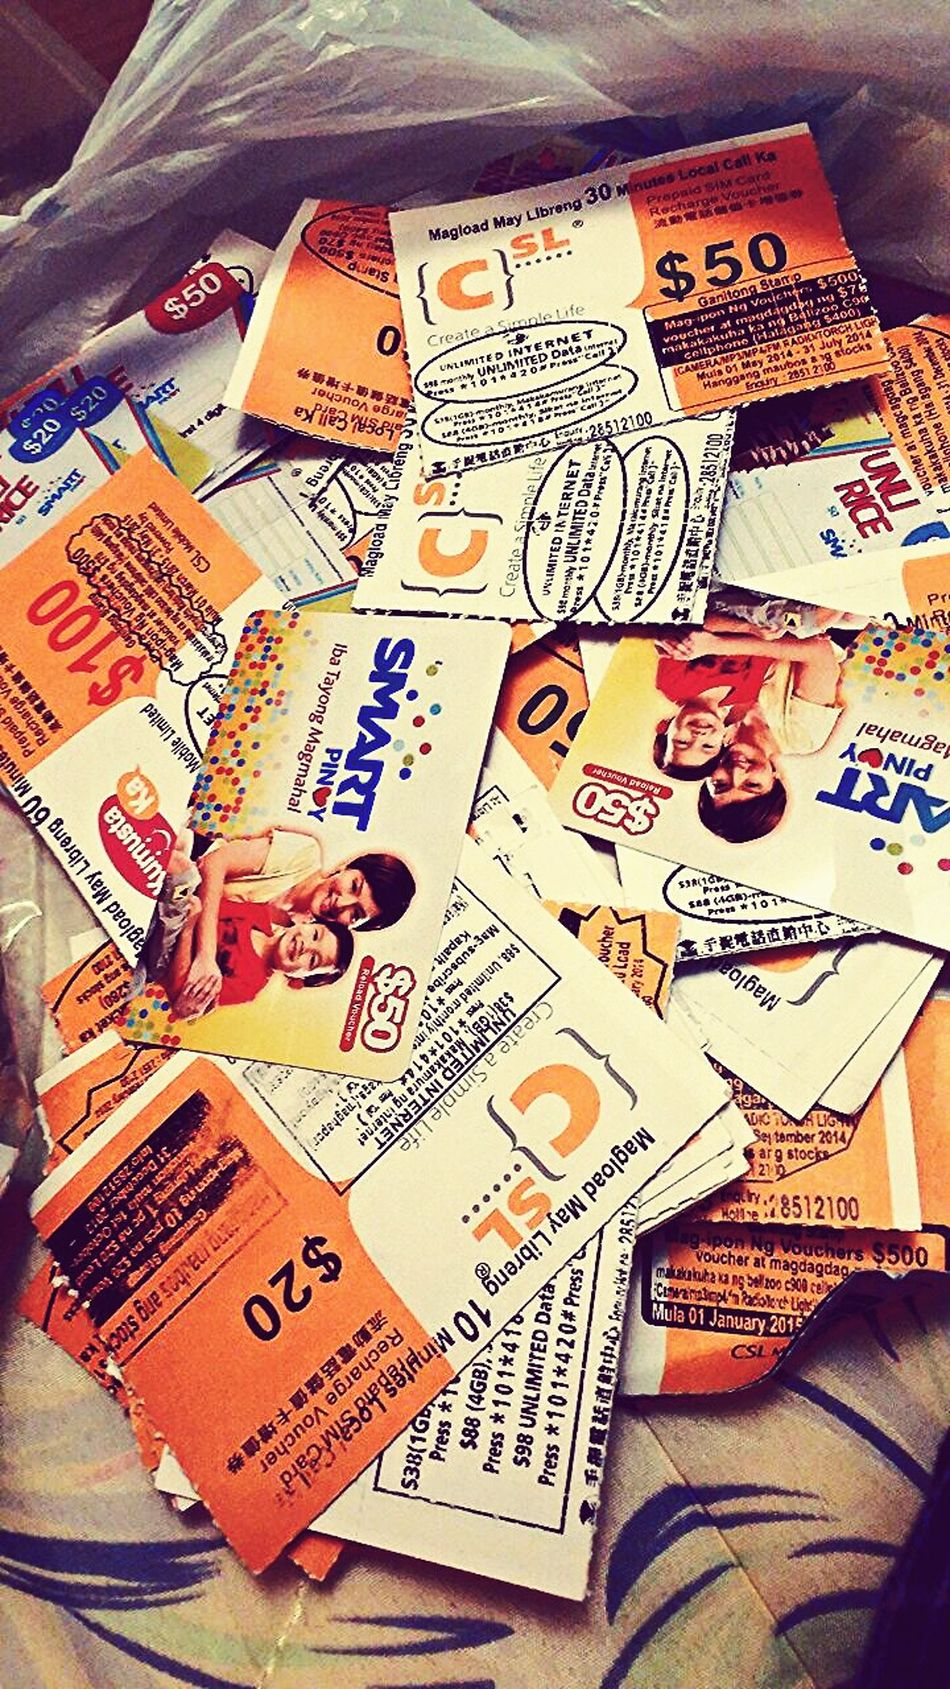 This is How The Life of Overseas Worker Spend the Long Distance Call... Prepaid Cards Taking Photos That's Me Justphotography Check This Out 😄😊❤👌✌